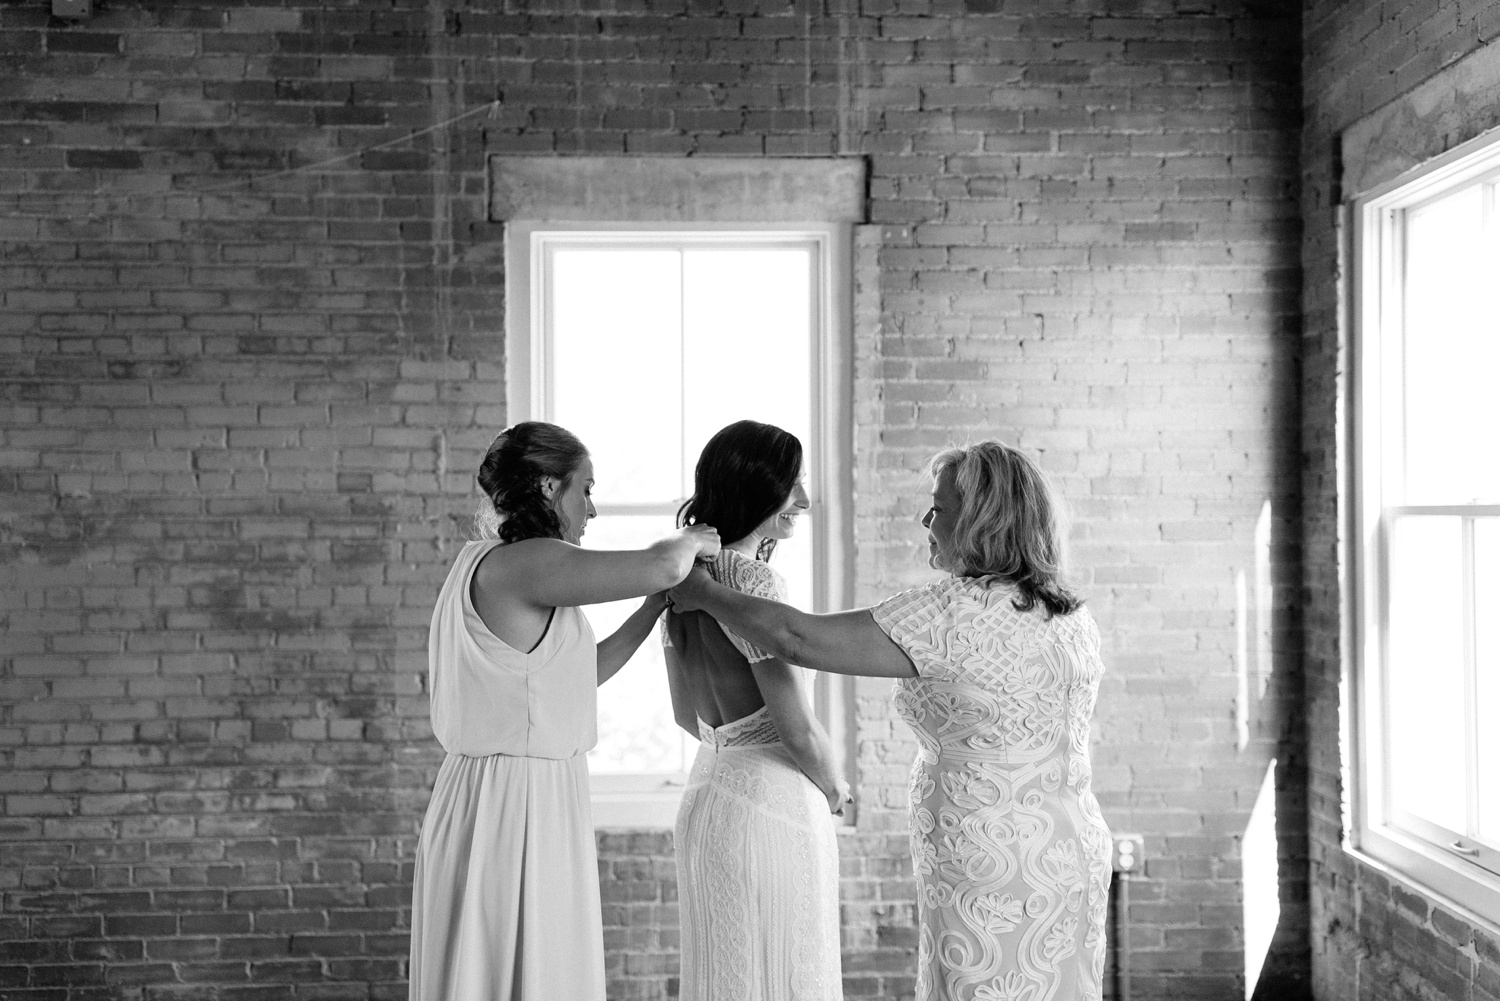 Kadee + Tyler | a raw, emotional wedding at the Filter Building on White Rock Lake in Dallas, TX by North Texas Wedding Photographer, Rachel Meagan Photography 019